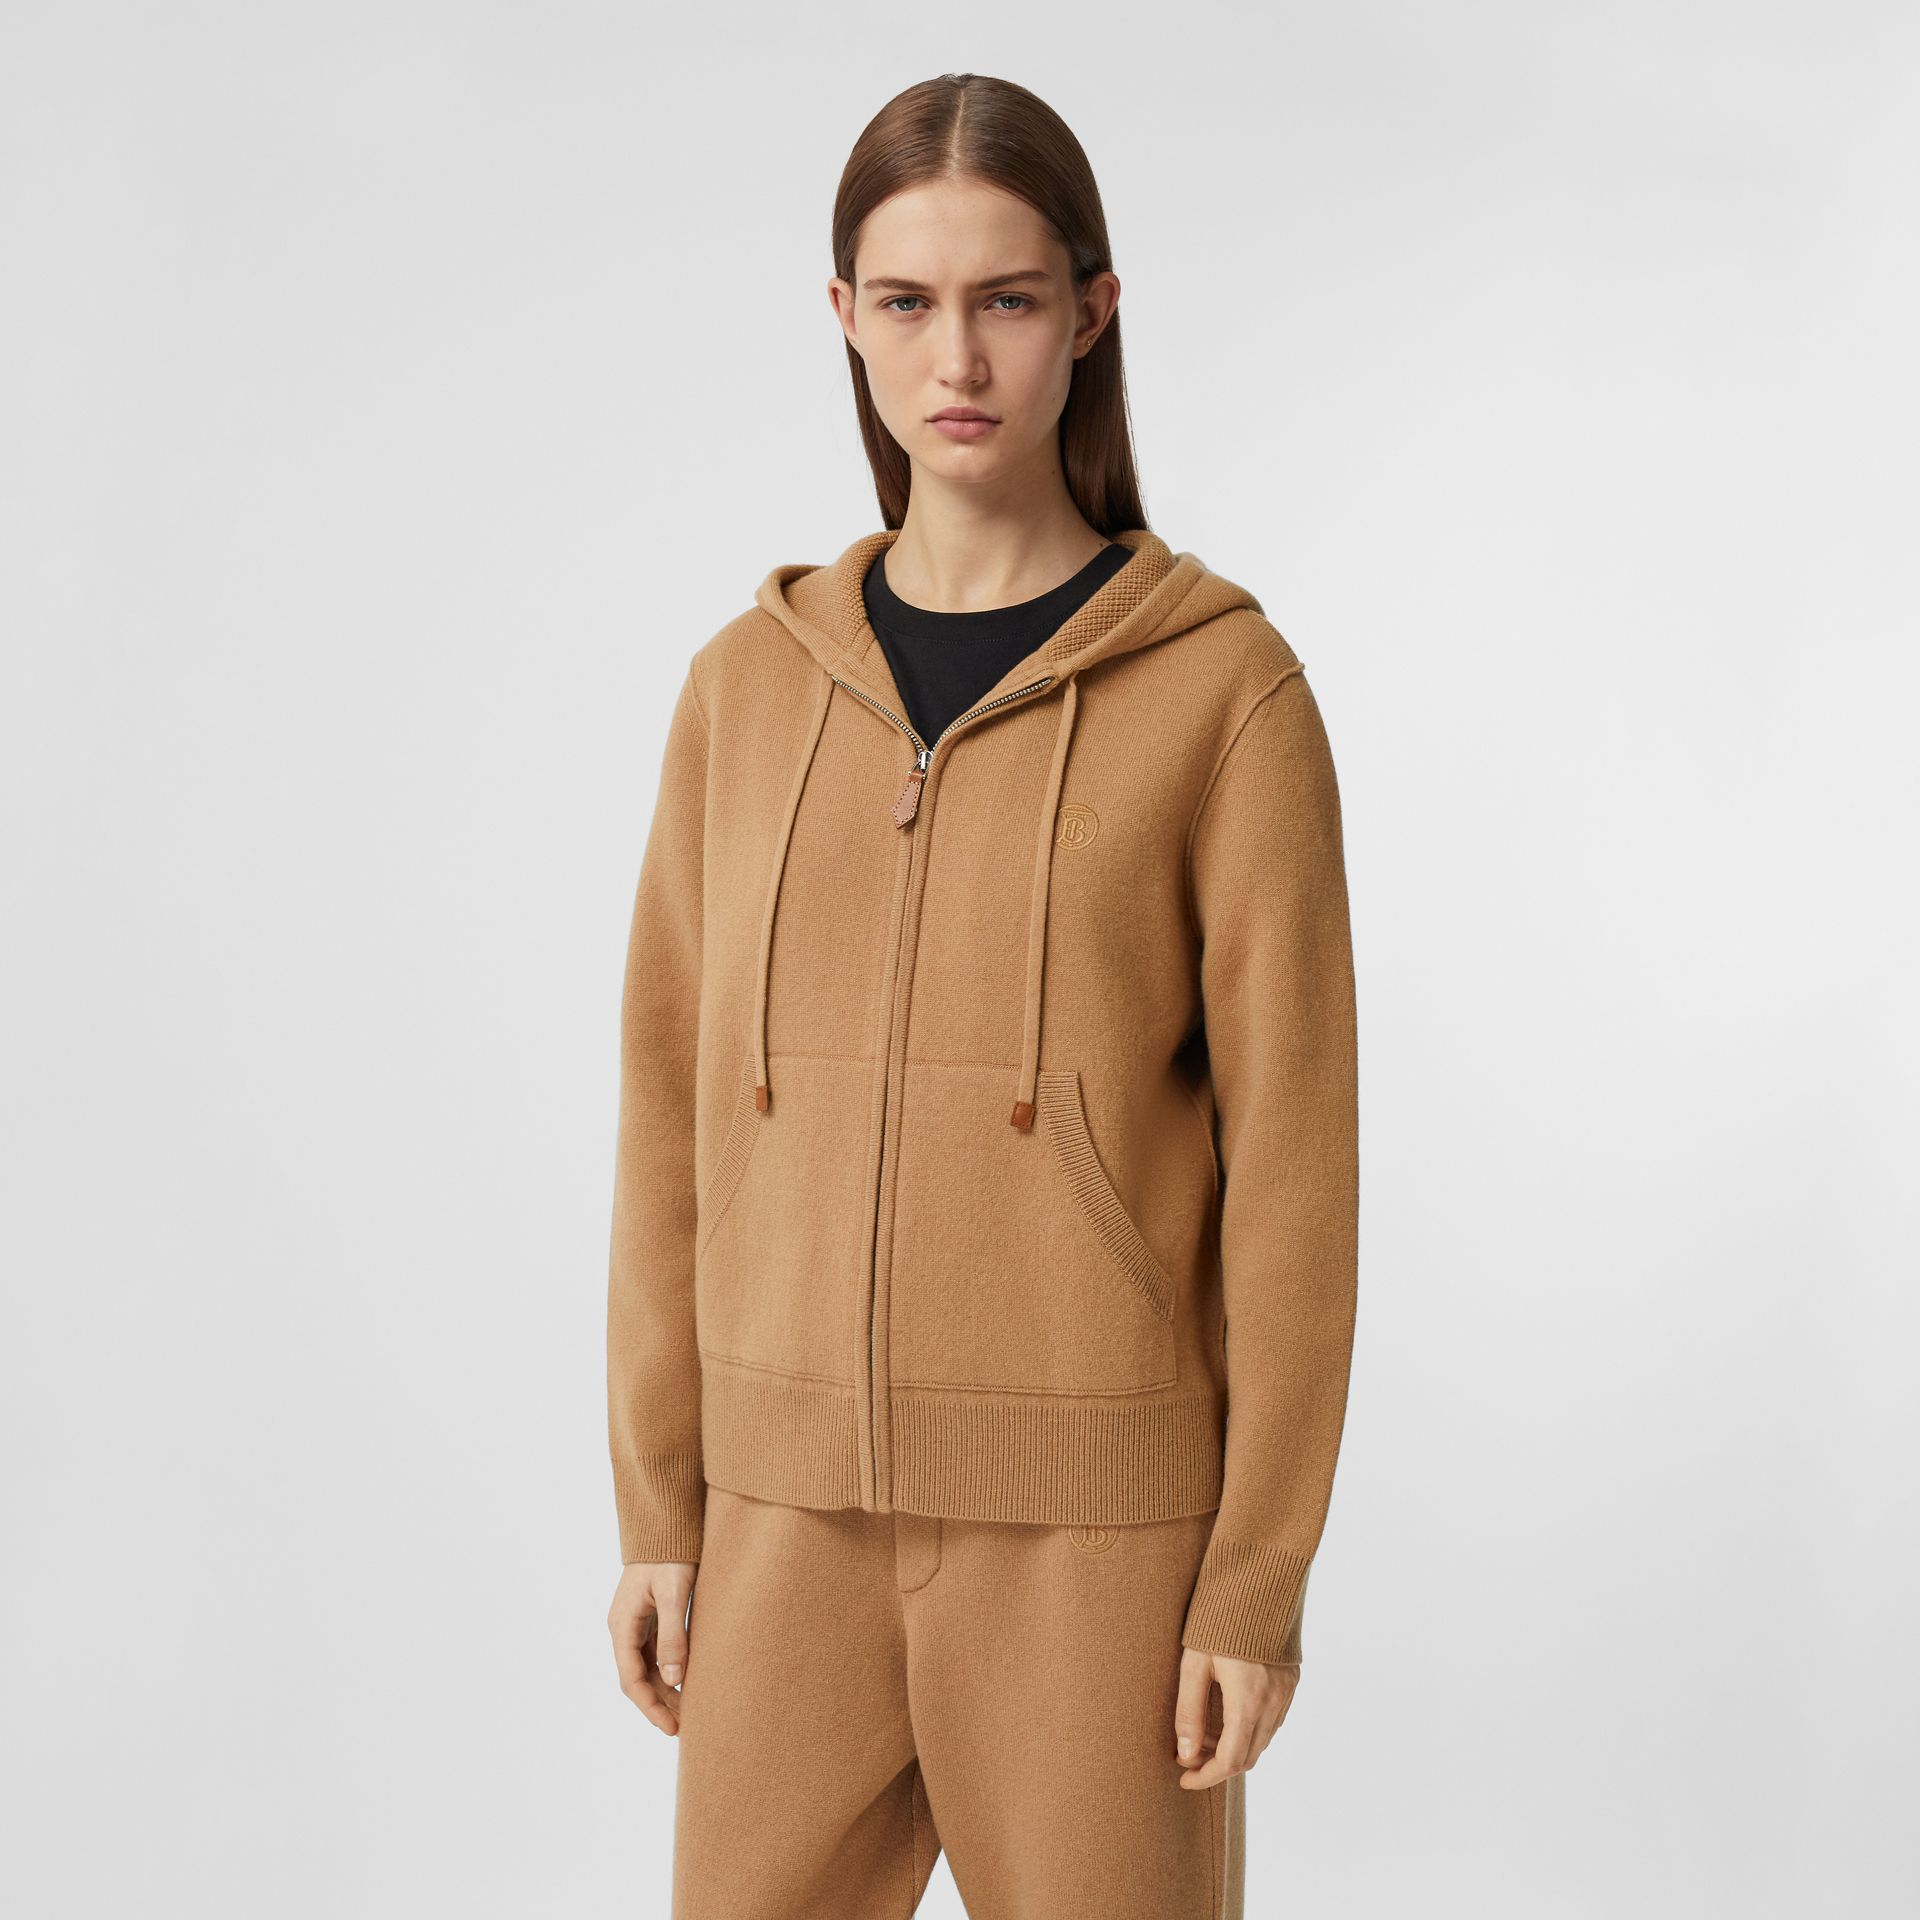 Monogram Motif Cashmere Blend Hooded Top in Camel - Women | Burberry - gallery image 5